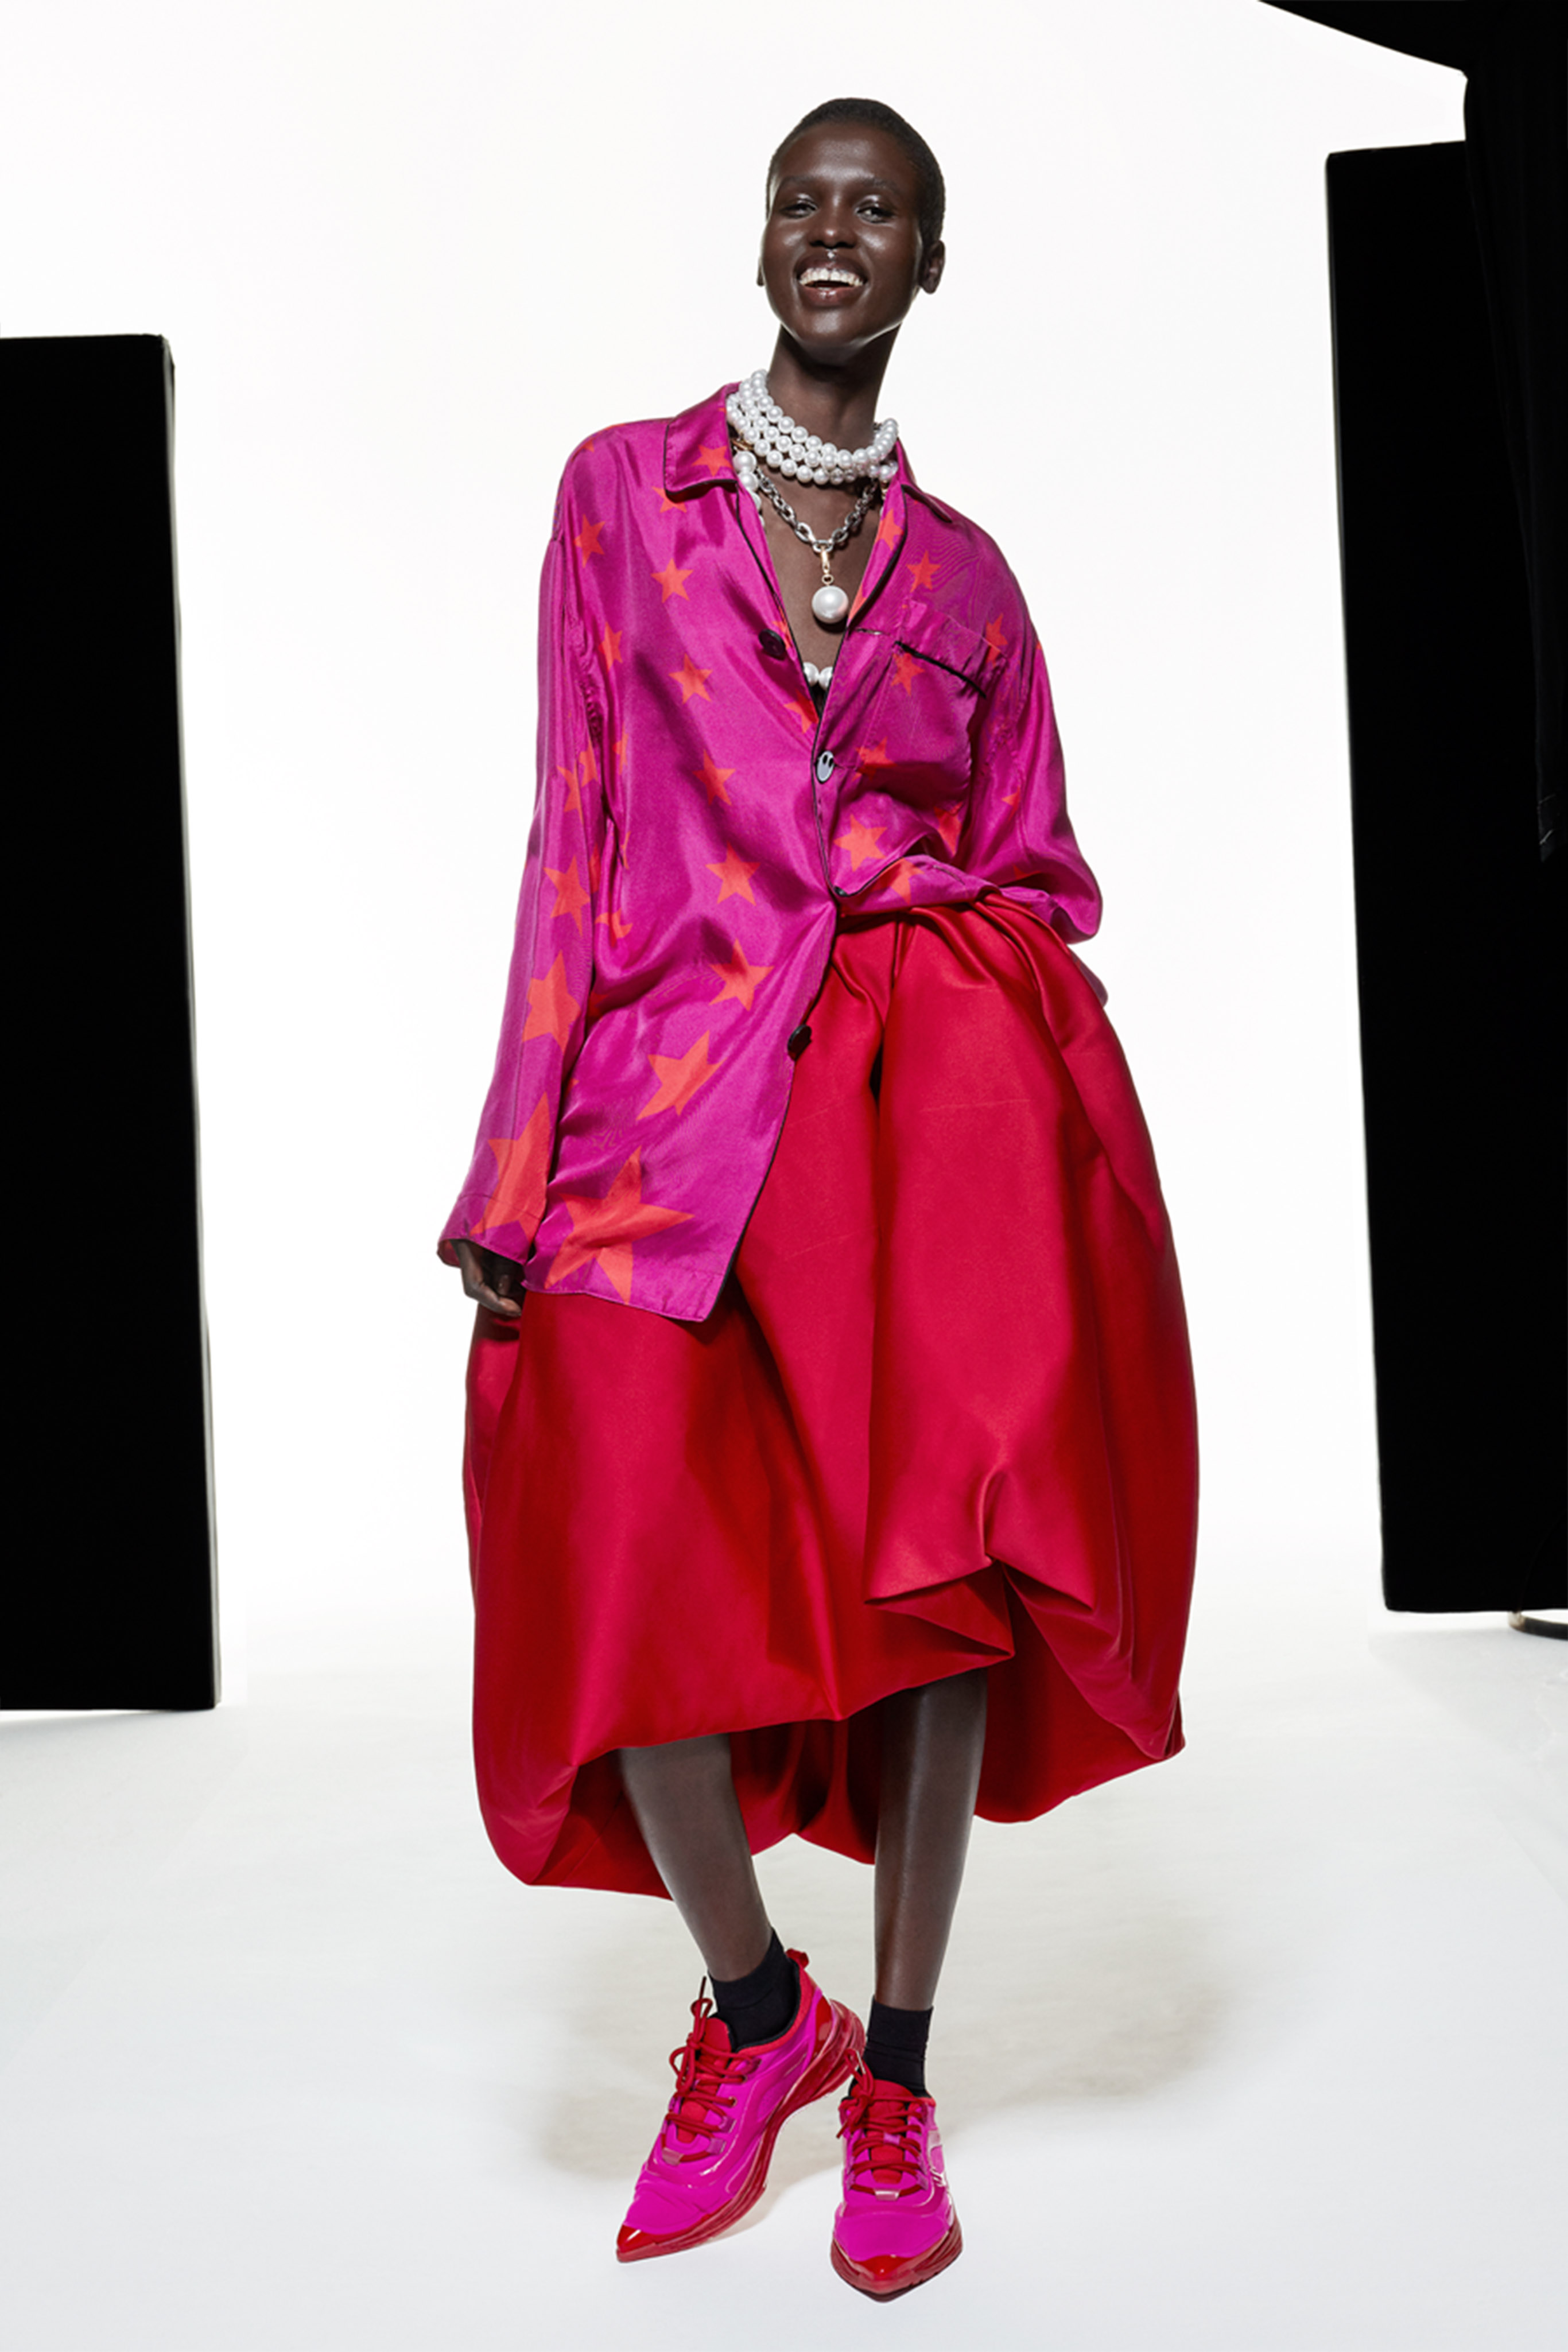 A look from AZ Factory Spring 2021